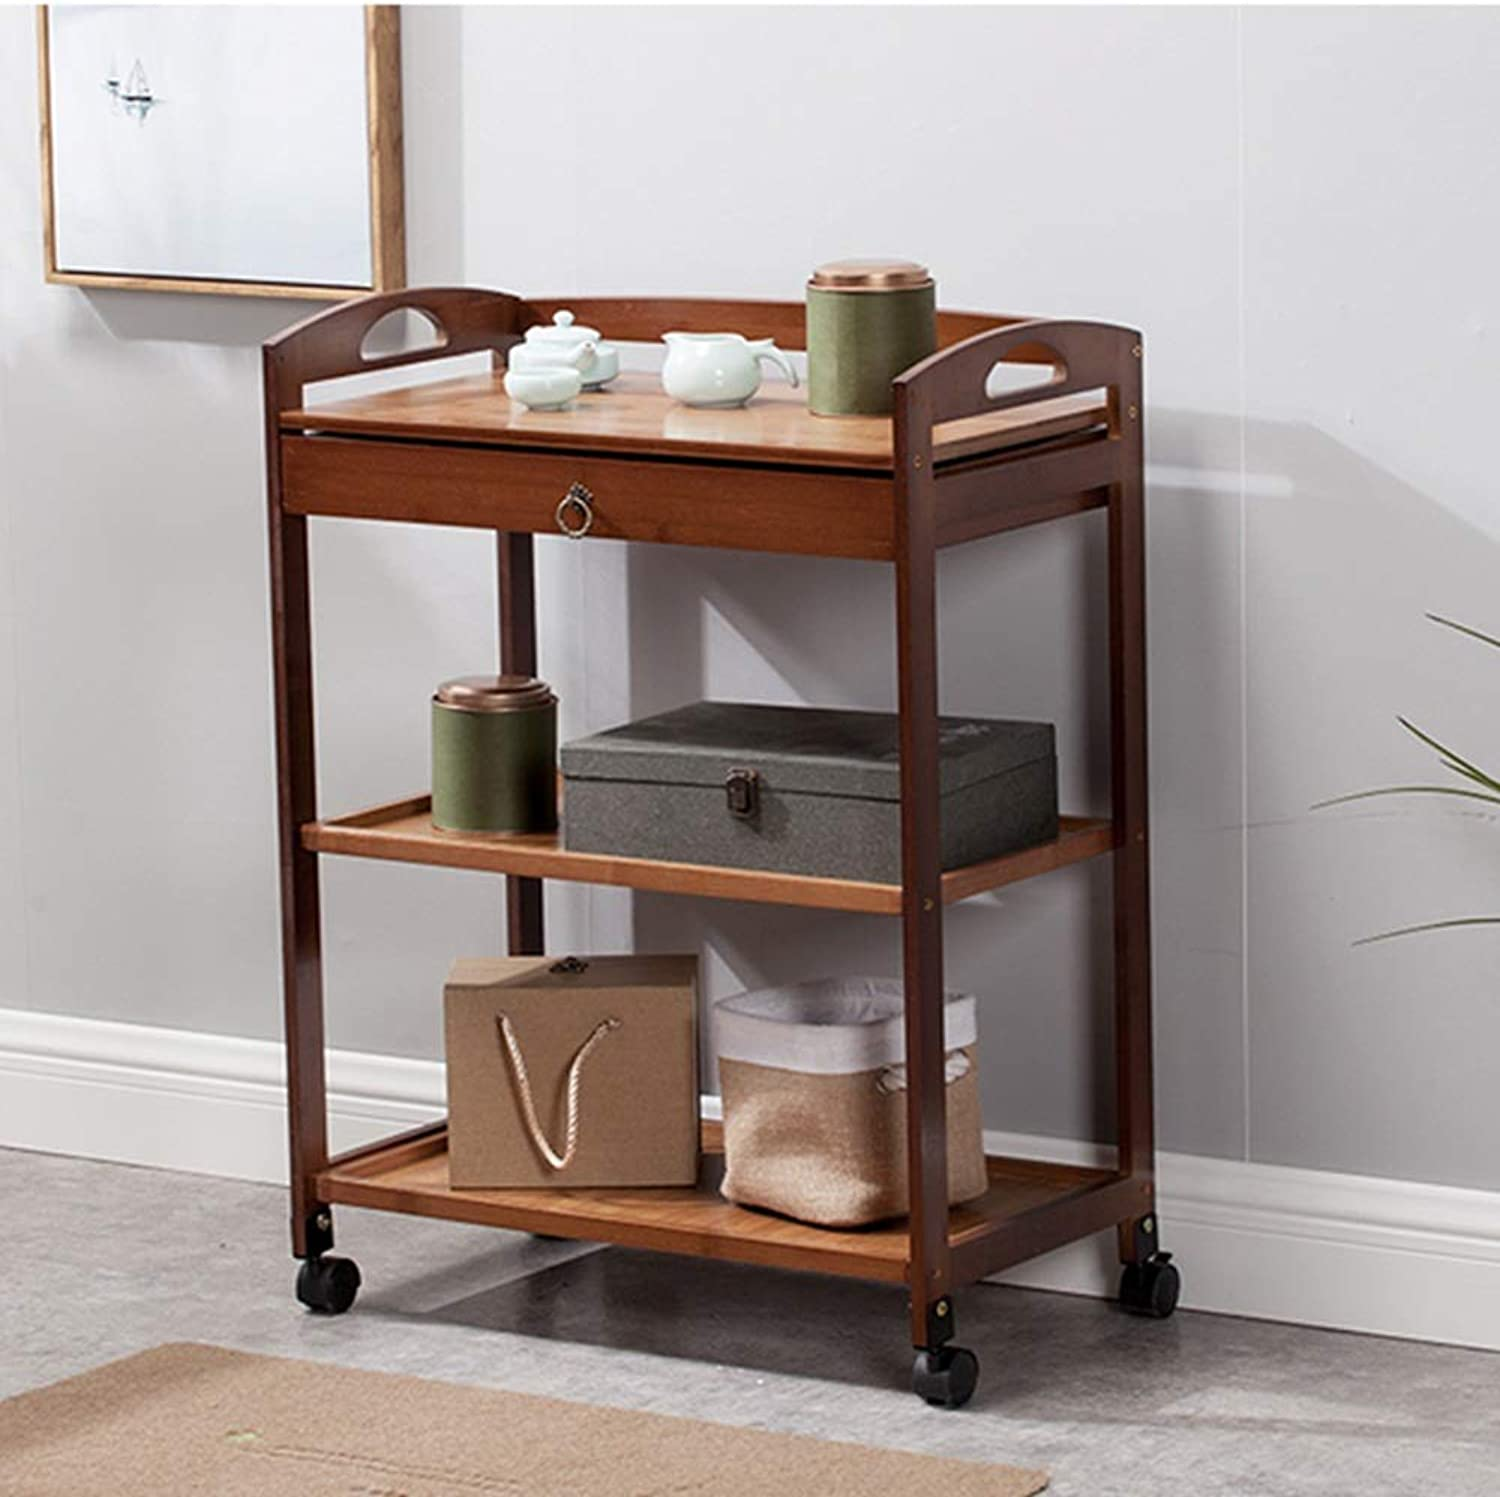 HUO Mobile Bookshelf, with Wheel Cart, Dining Car, Floor Magazine Rack, Living Room Storage Rack, Finishing Storage Shelf with Drawer Bookcases (color   Brown, Size   60  33  80cm)